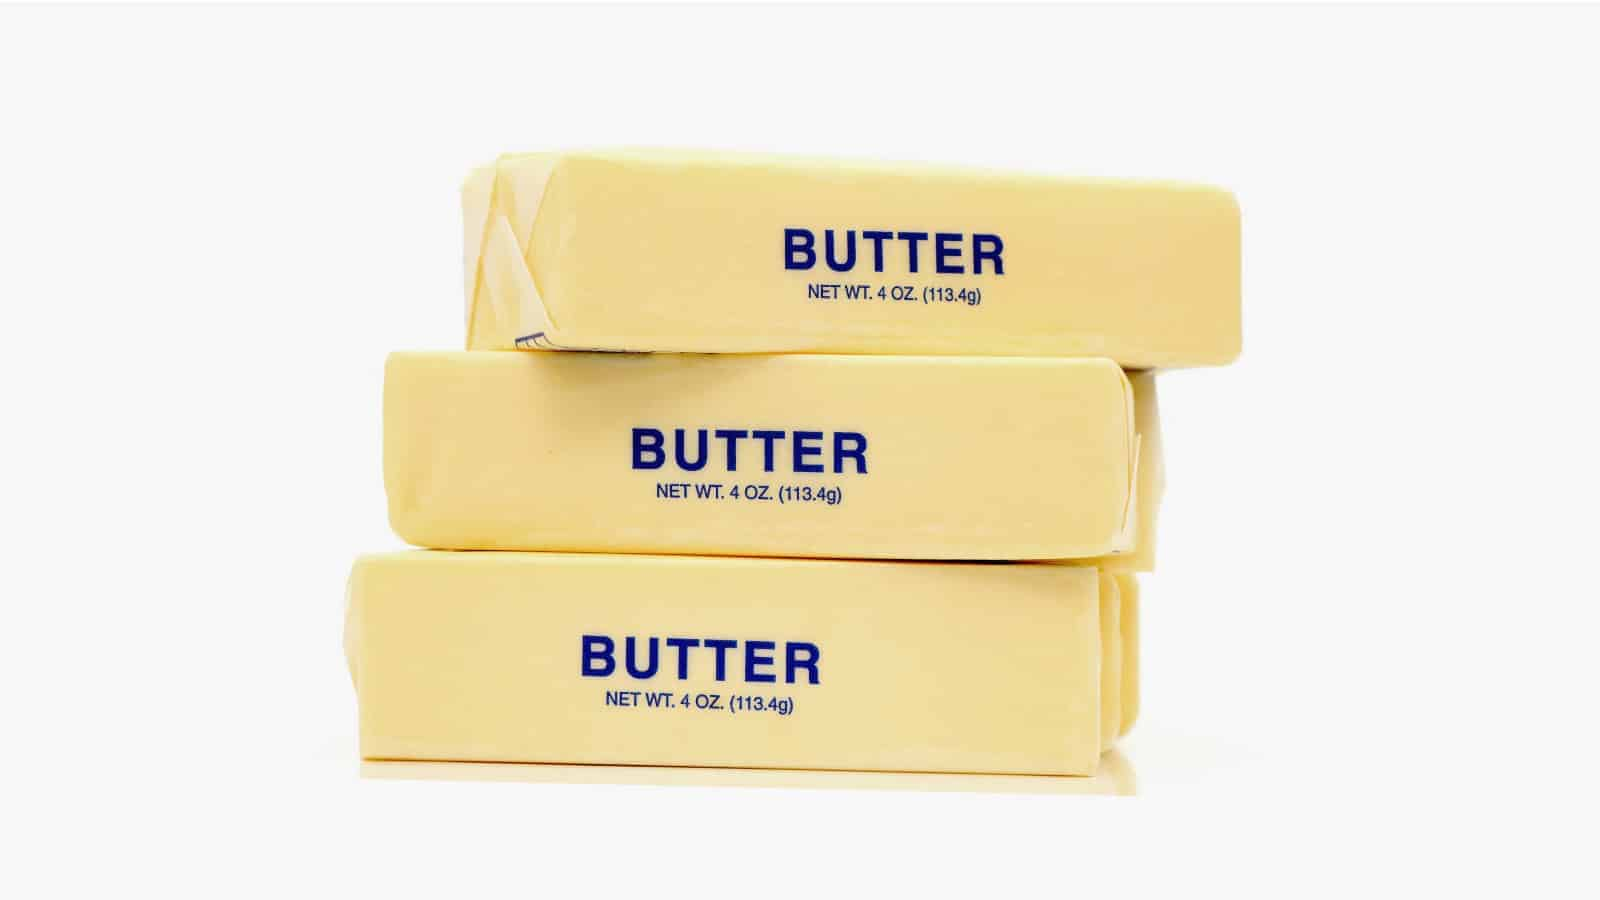 Butter Facts: 5 Things Most People Don't Know About This Creamy Spread